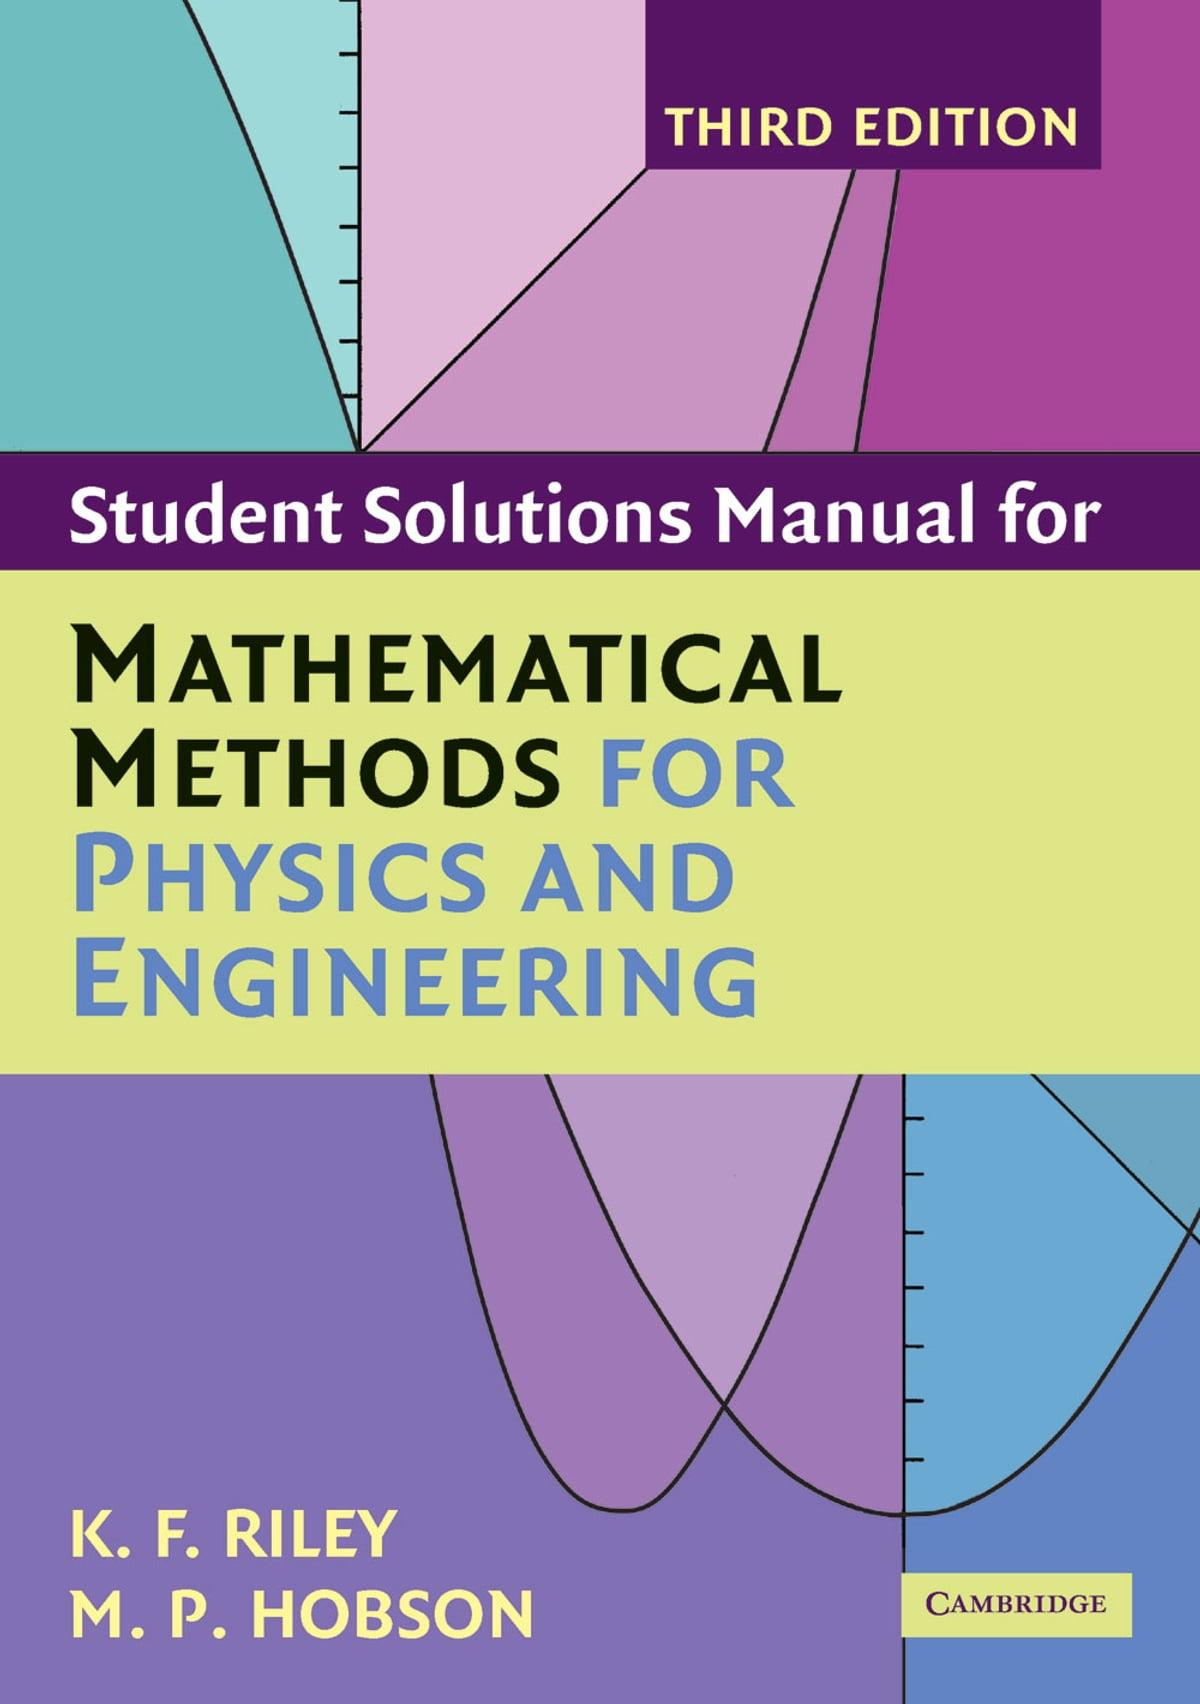 Student Solution Manual for Mathematical Methods for Physics and  Engineering Third Edition eBook by K. F. Riley - 9781107485204 | Rakuten  Kobo